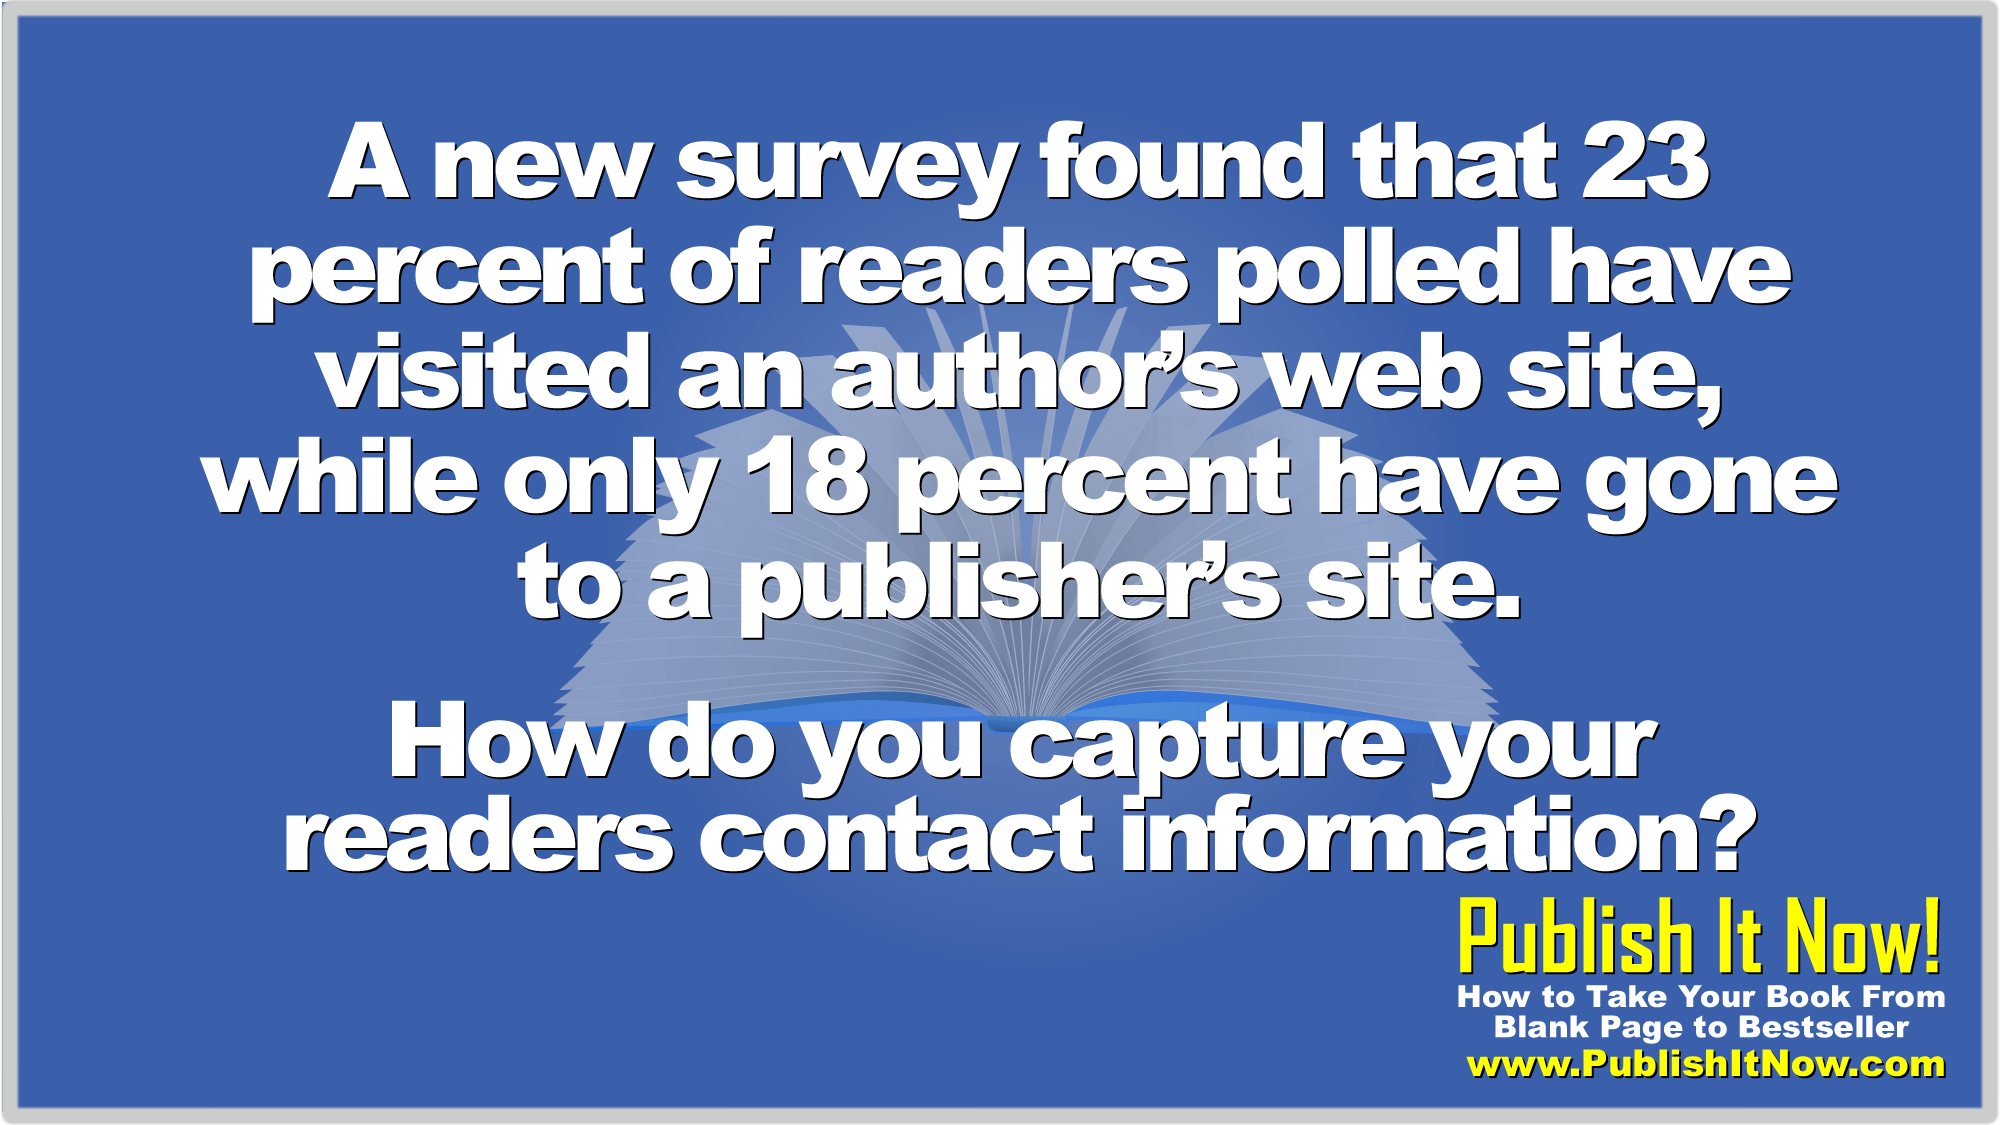 A new survey found that 23 percent of readers polled have visited an author's web site, while only 18 percent have gone to a publisher's site. How do you capture your readers contact information?